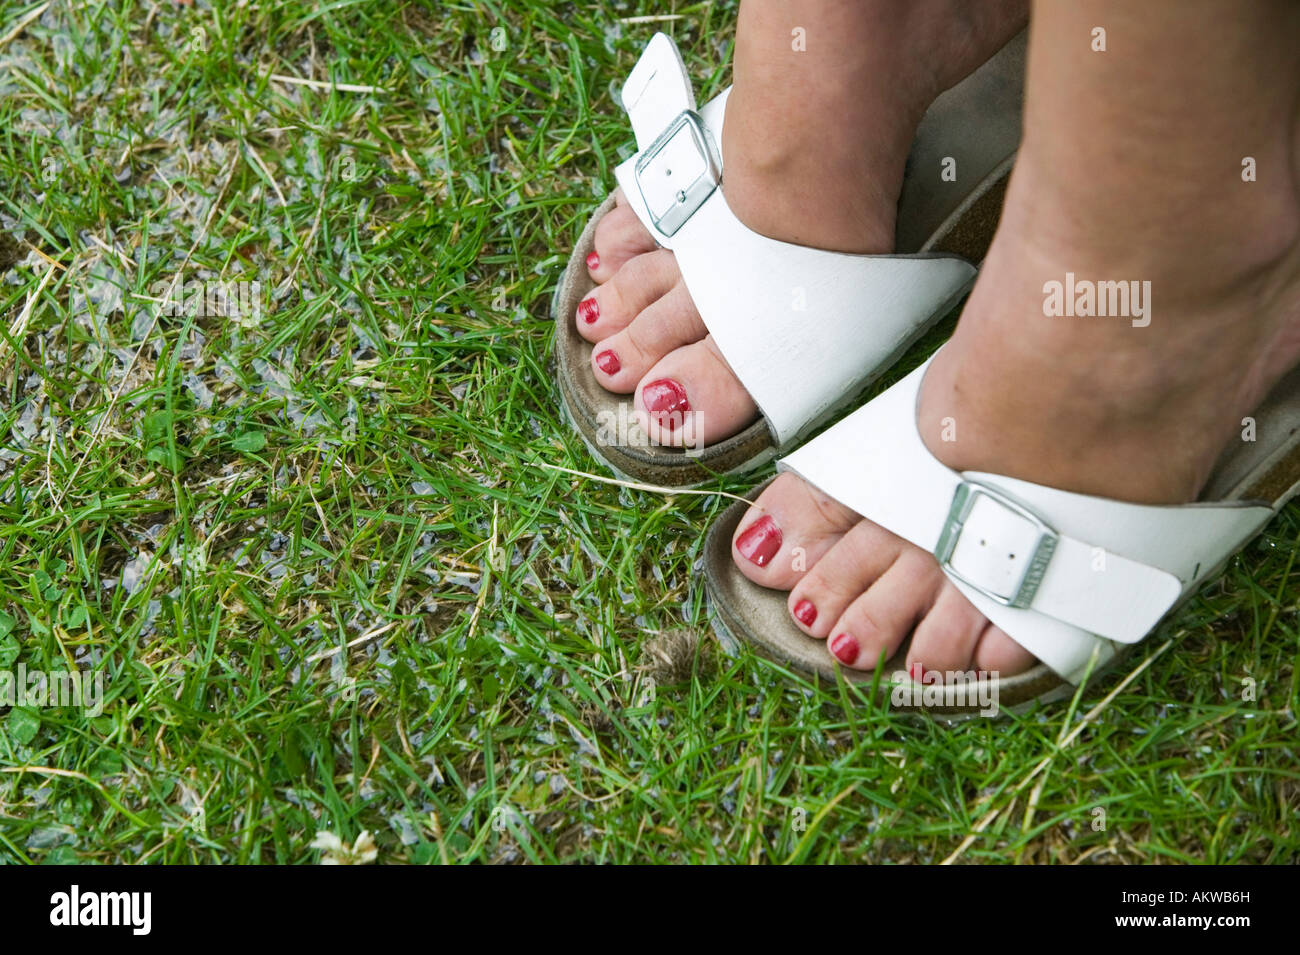 a-pair-of-womens-feet-in-a-pair-of-white-sandals-on-wet-grass-AKWB6H.jpg